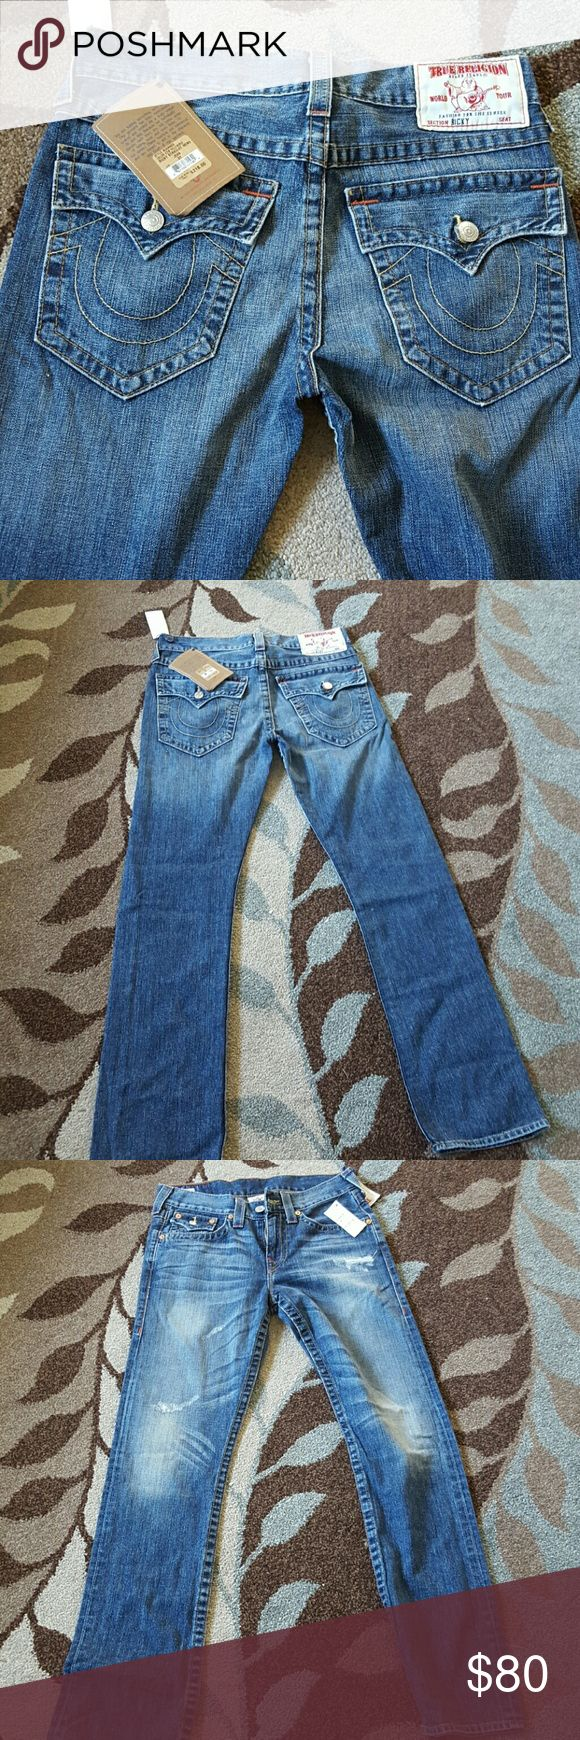 New True Religion mens jeans New with tag True Religion mens jeans size 31 long 33 Ricky straight cut True Religion Jeans Straight